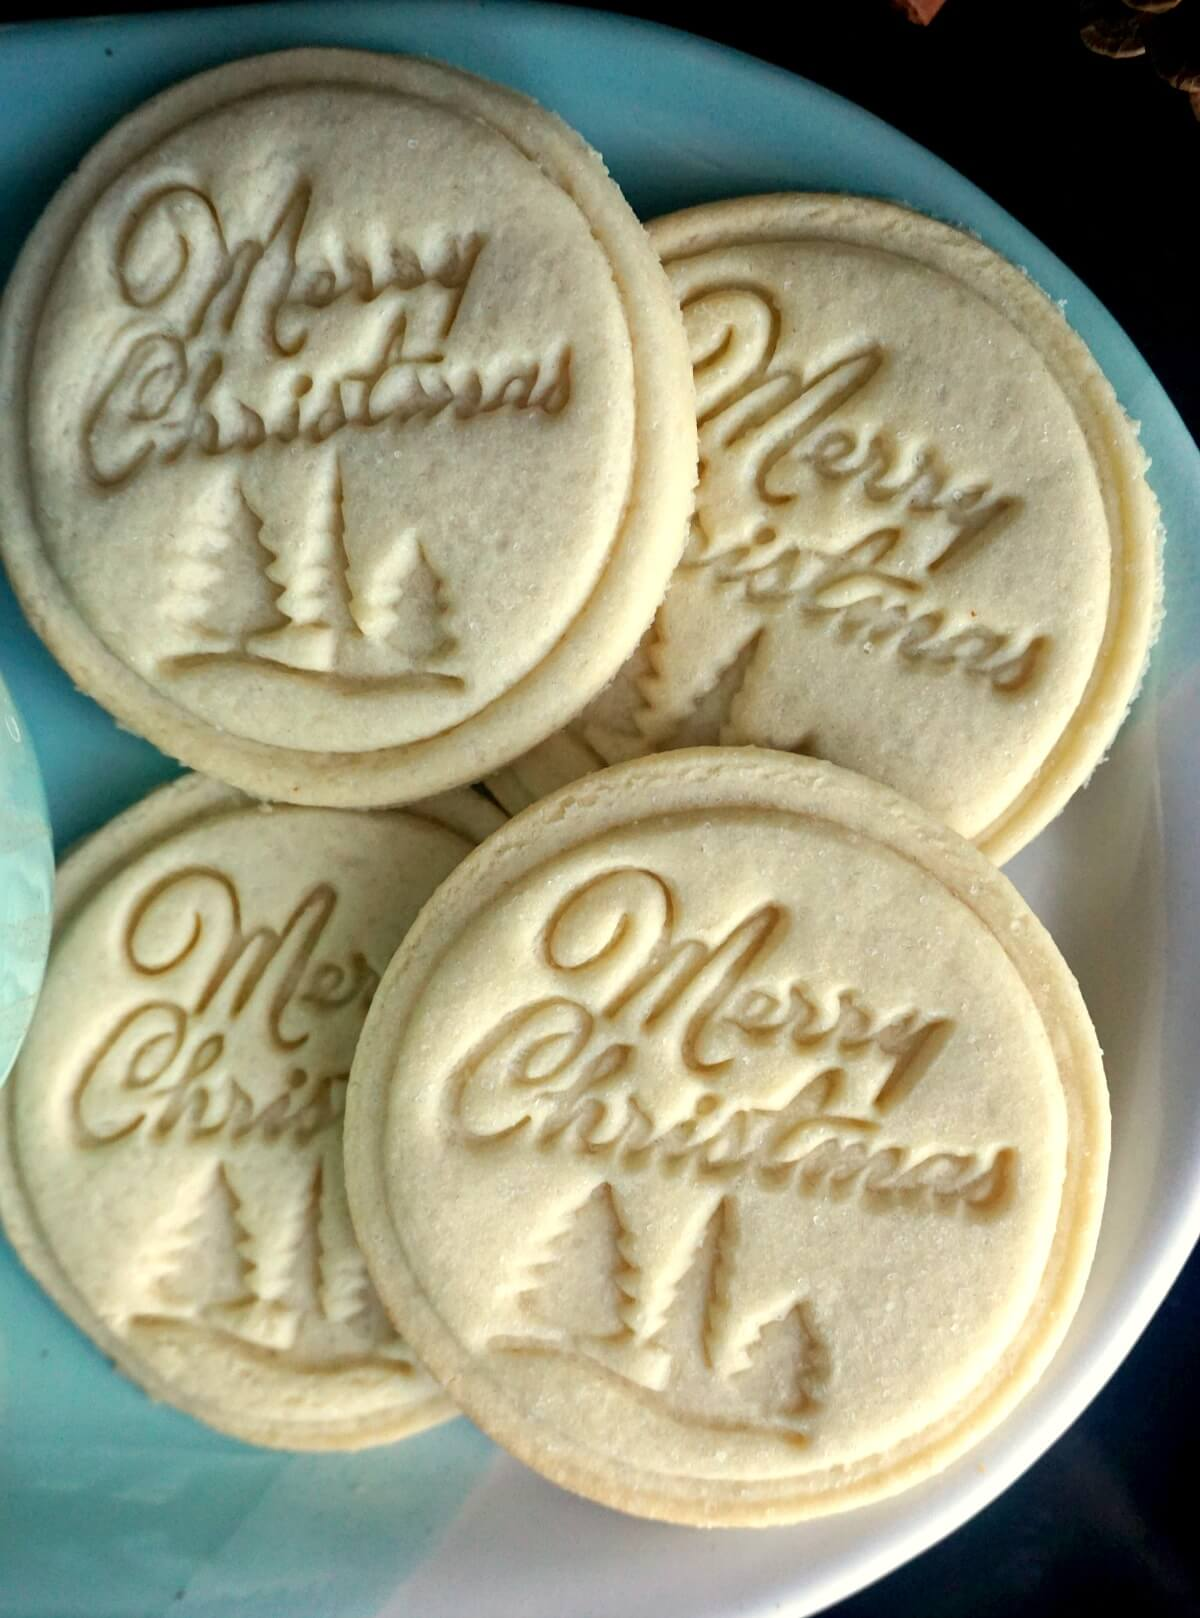 Close-up shoot of 4 stamped cookies